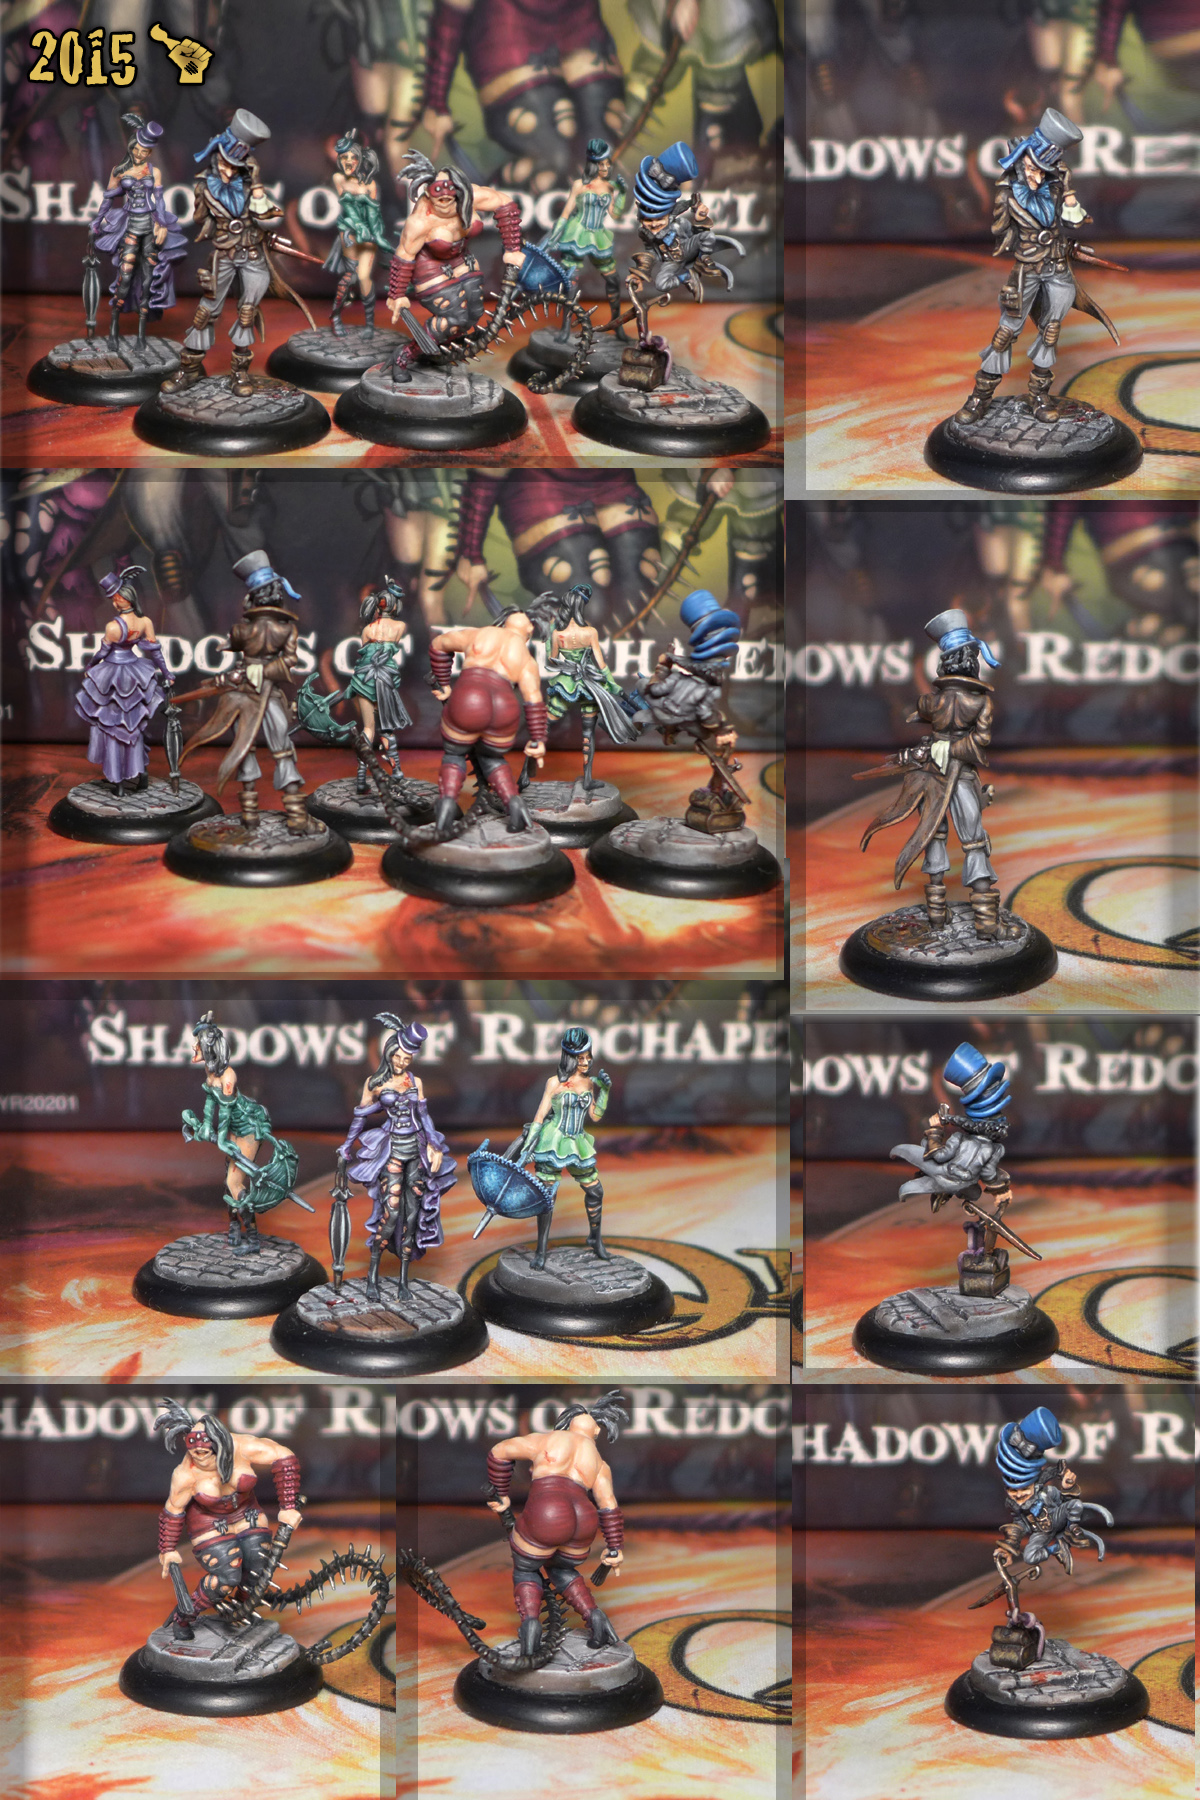 Scar_hand Painting - Malifaux Shadows of Redchapel Crew by Nazroth